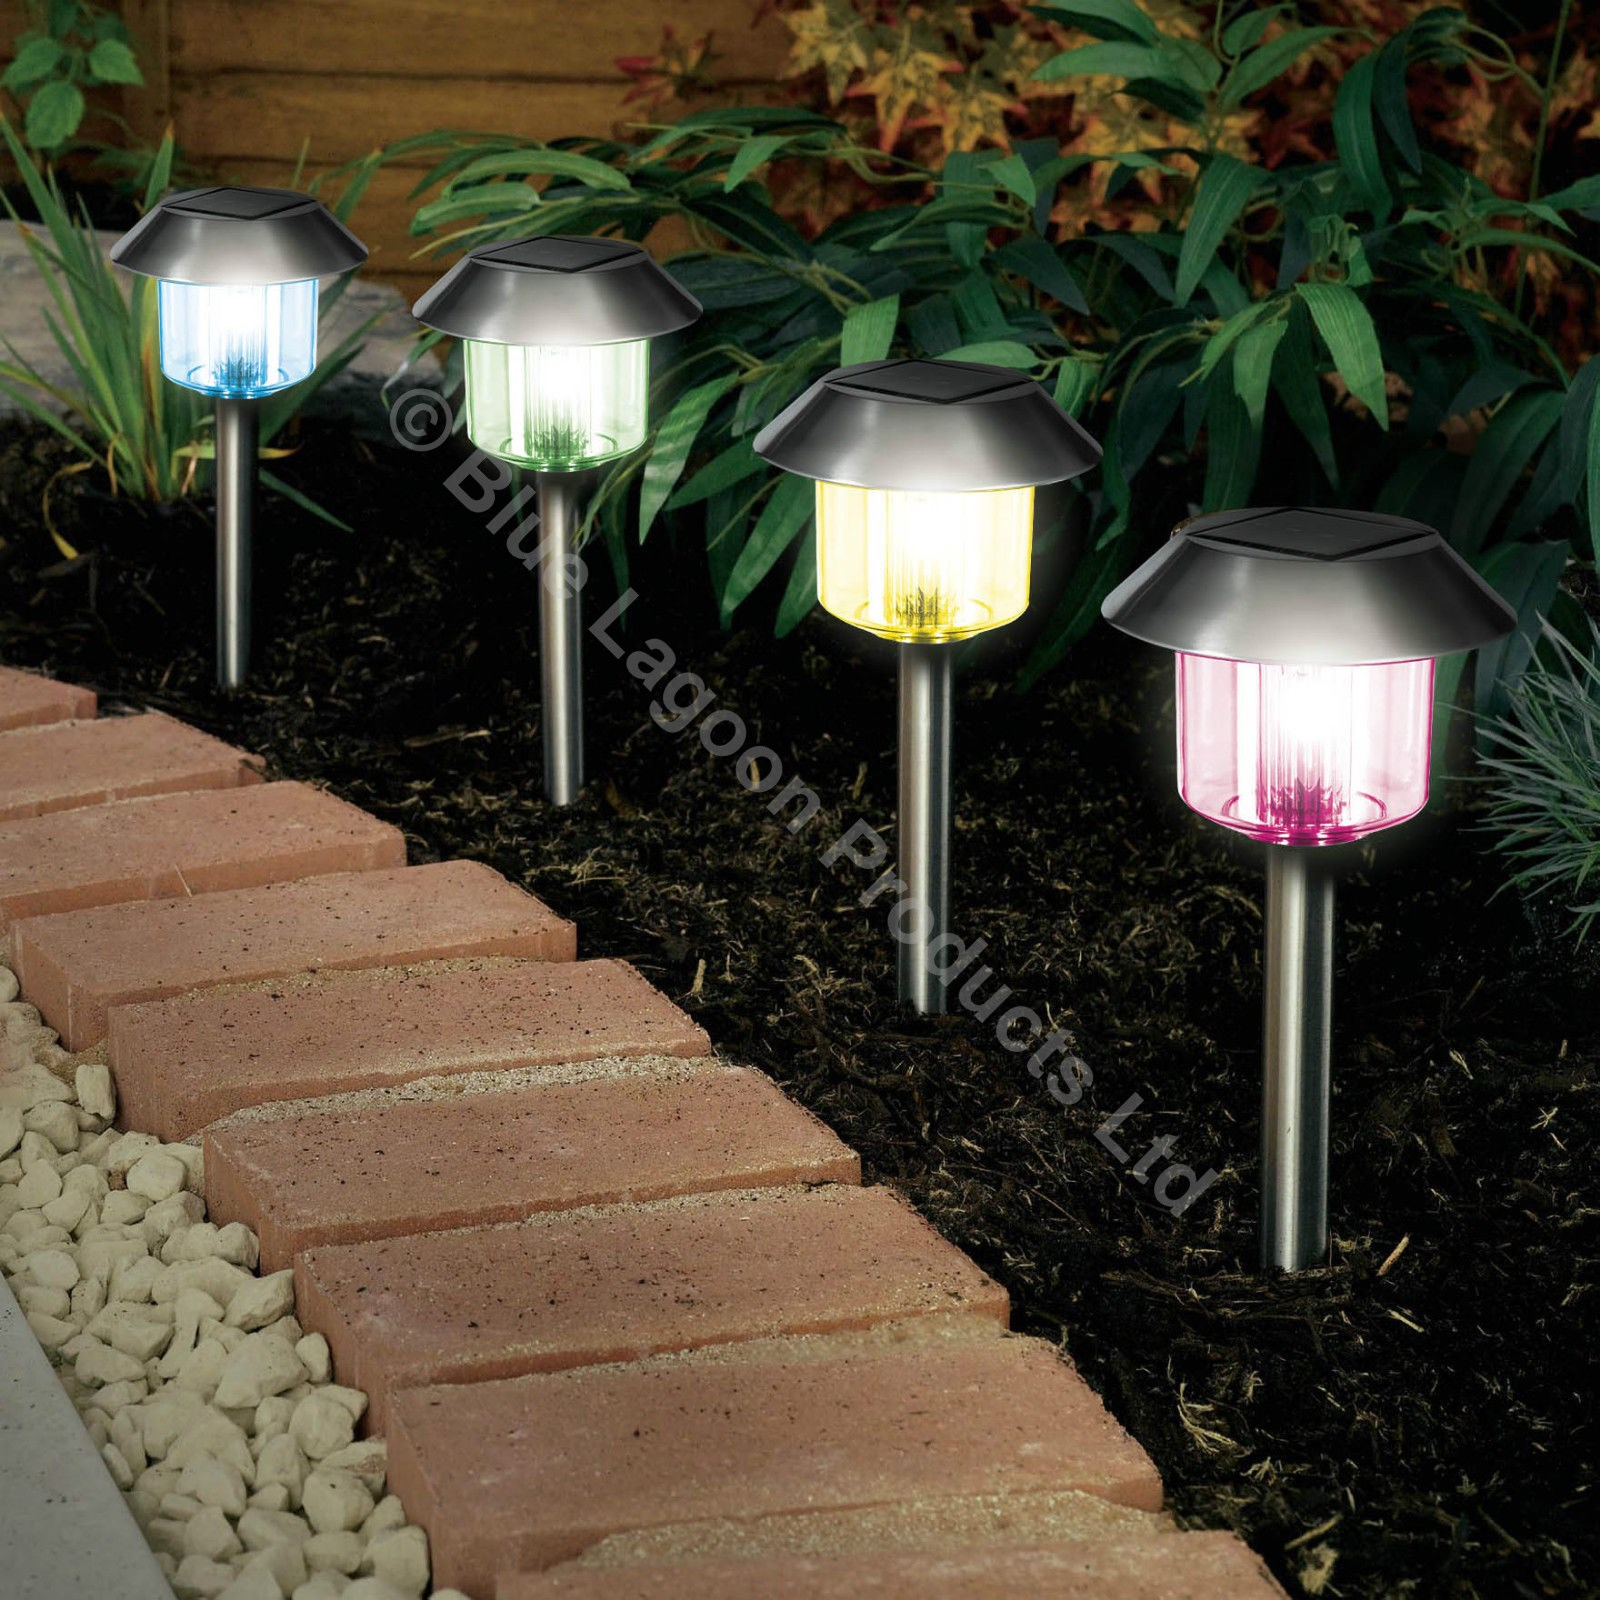 éclairage Solar Power LED Light Outdoor Post Propulsé Jardin